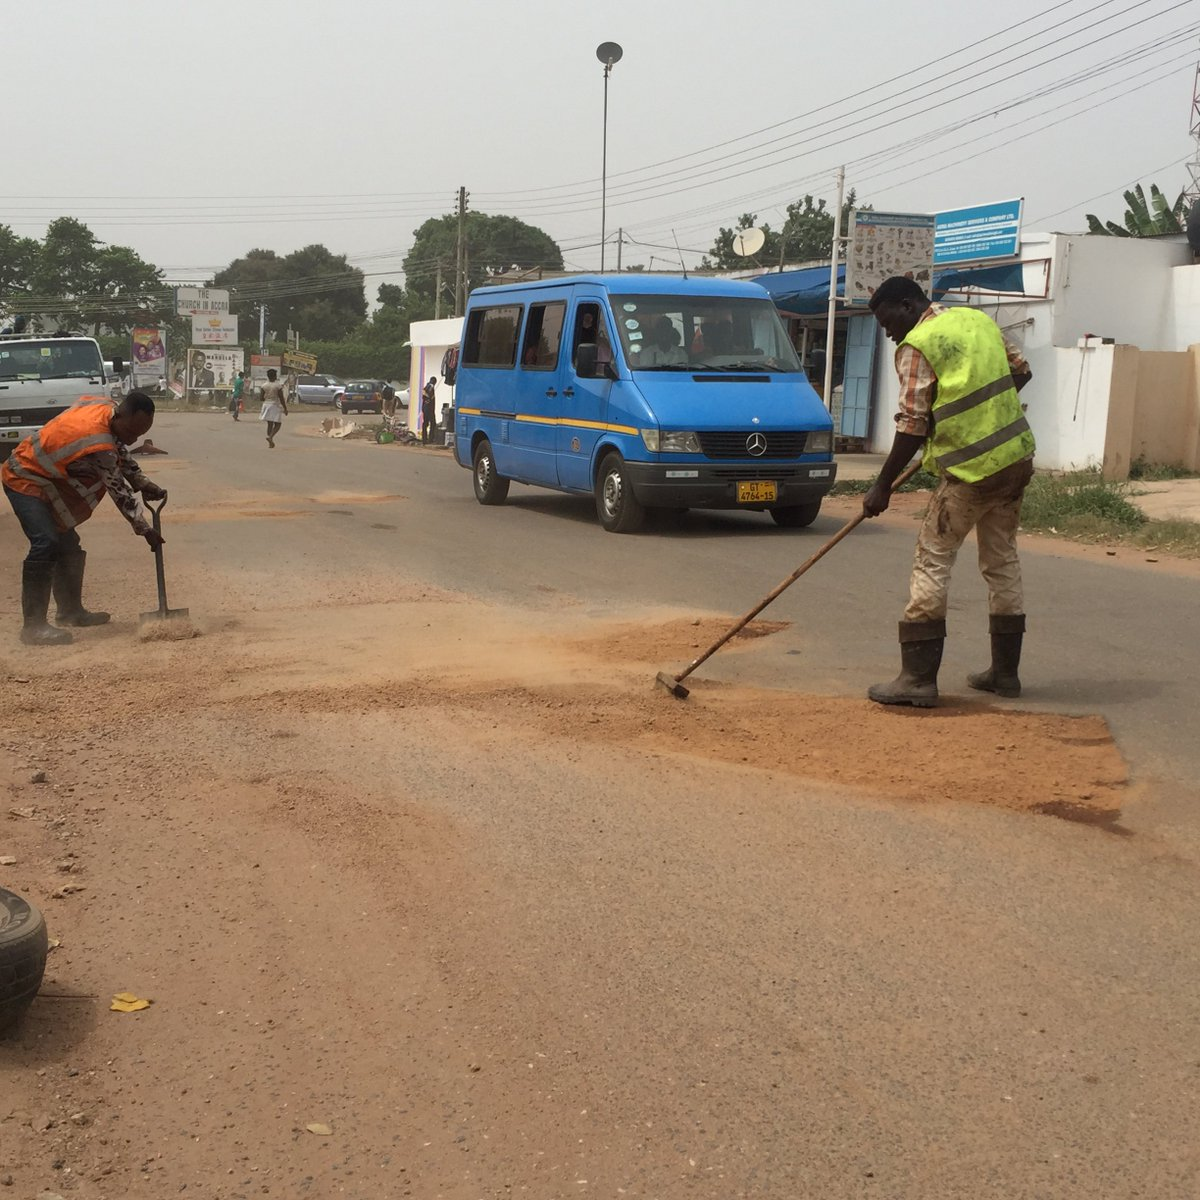 You construct bad roads, then you hire people to patch them and call it youth employment. How sick are we? #Ghana https://t.co/8b3s423k7u